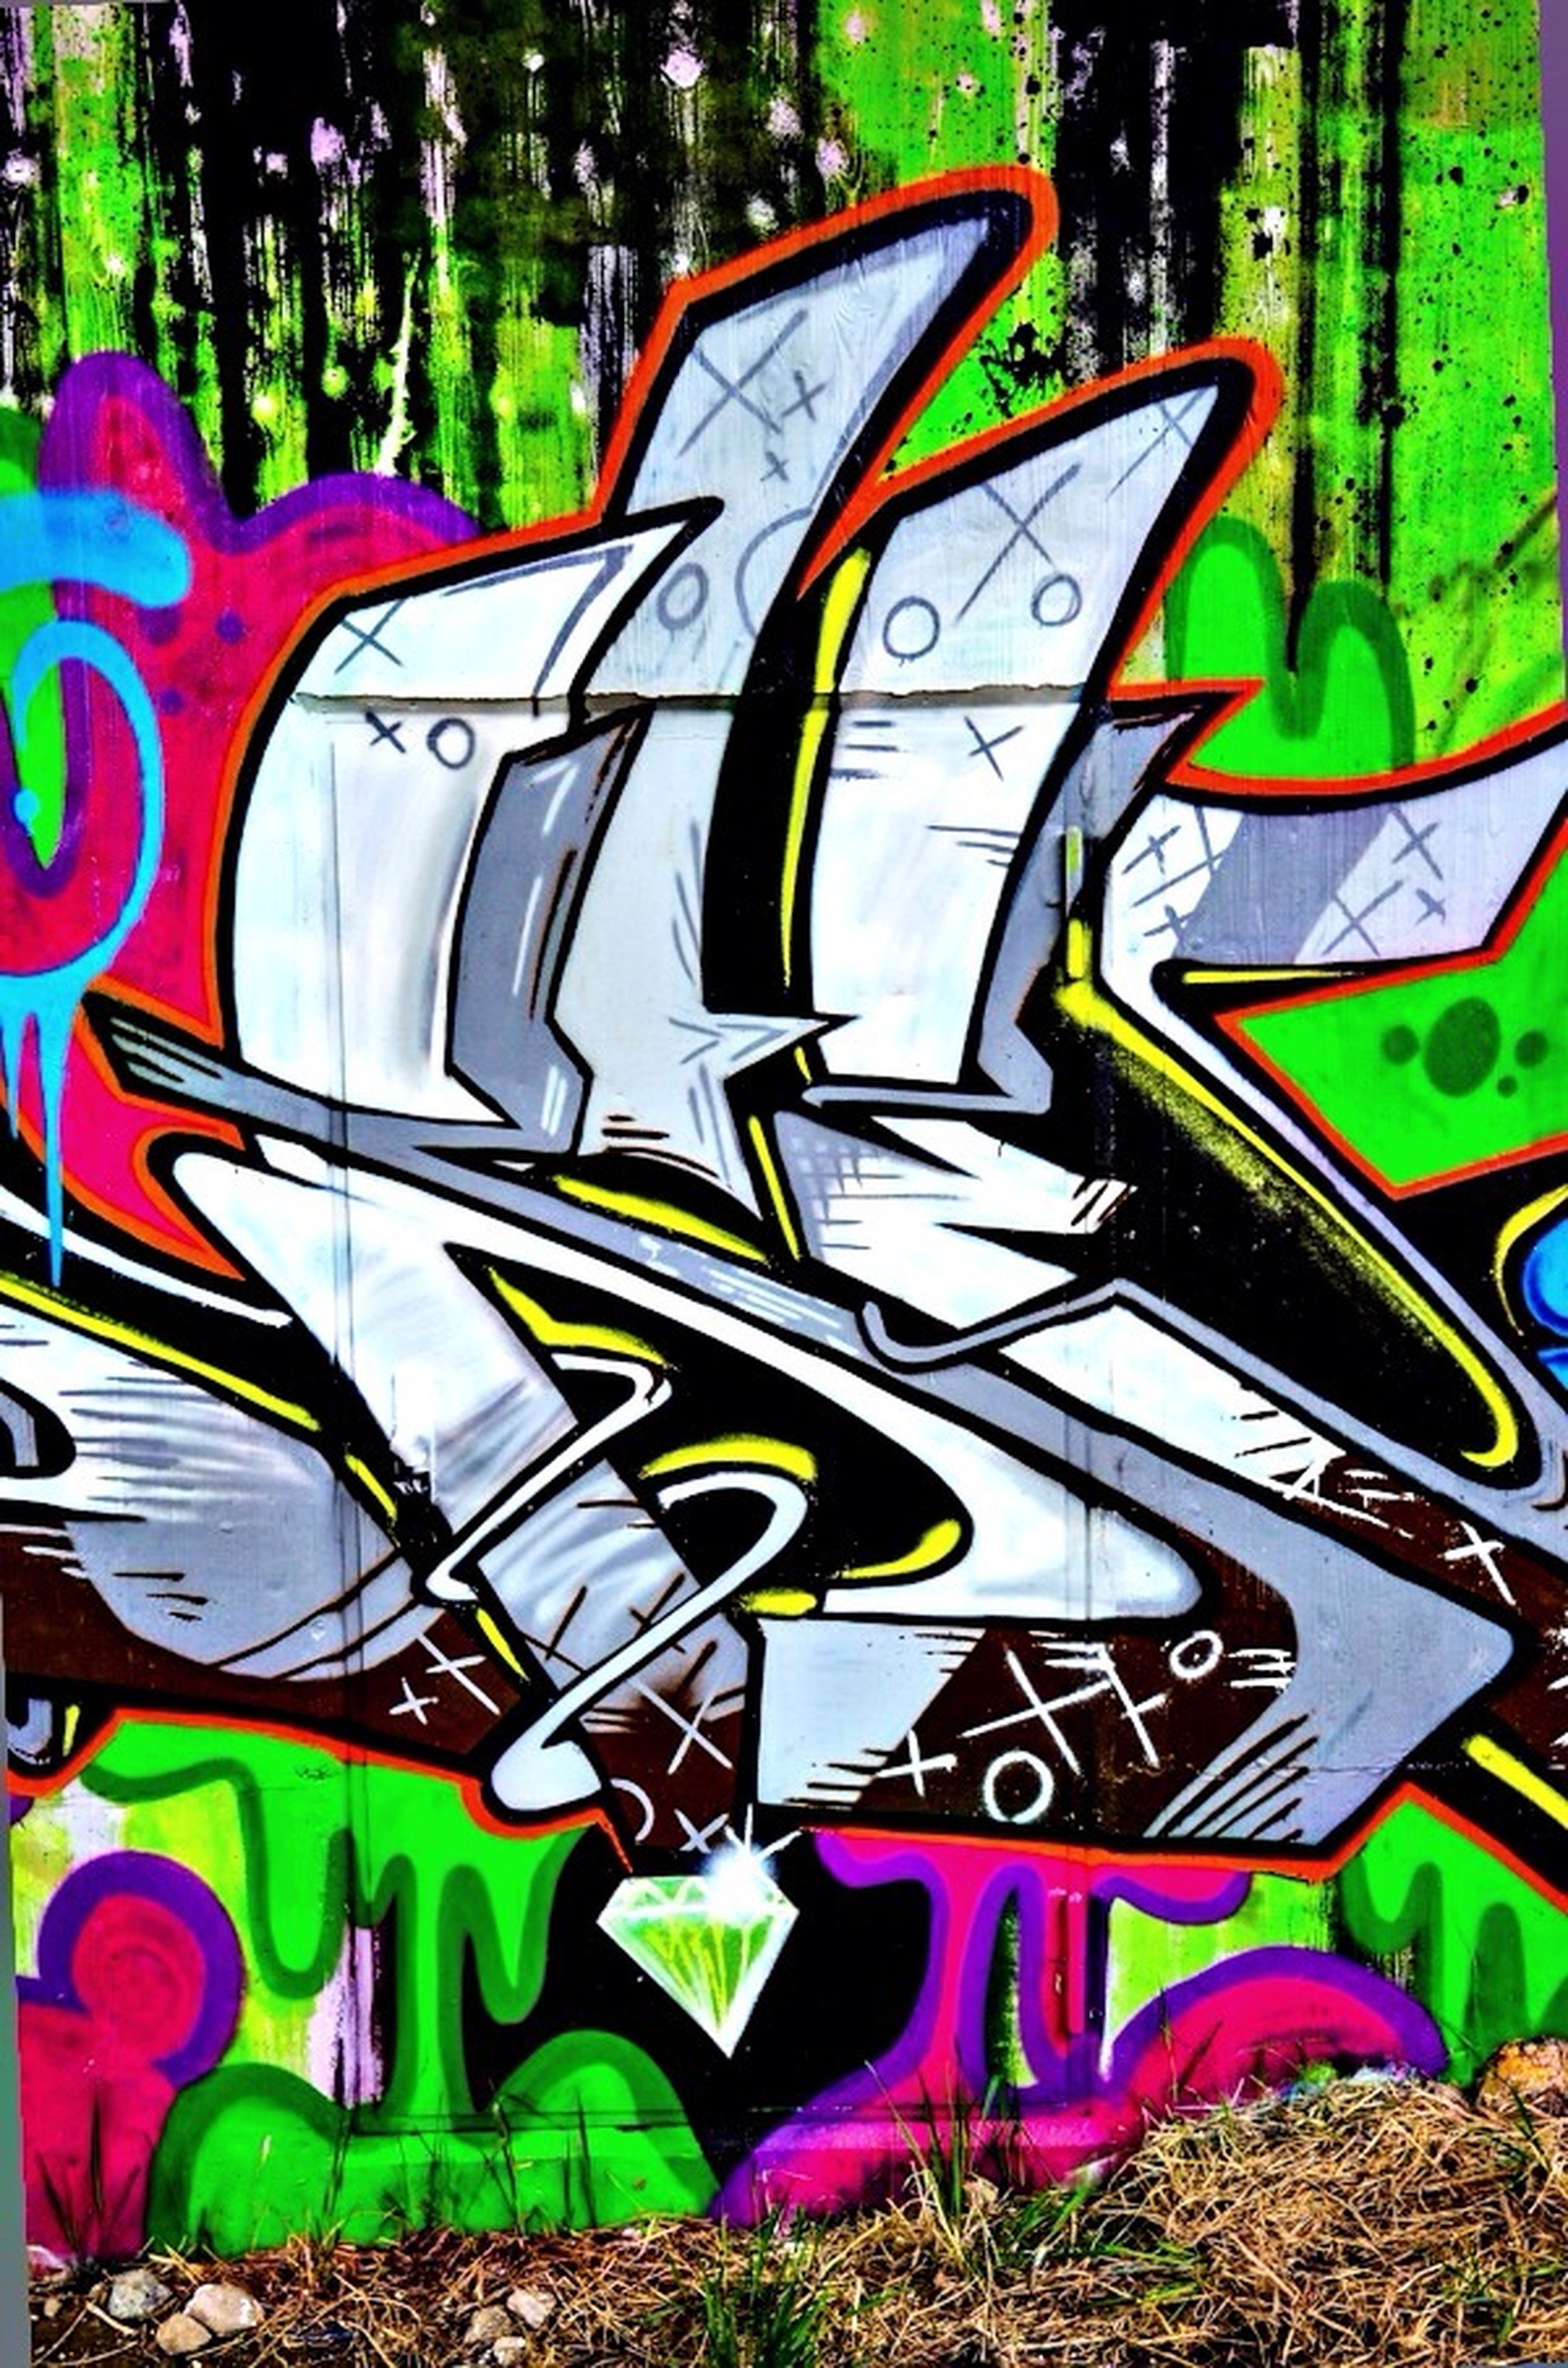 multi colored, art, creativity, art and craft, graffiti, colorful, pattern, green color, design, wall - building feature, backgrounds, built structure, day, full frame, no people, street art, architecture, outdoors, shape, yellow